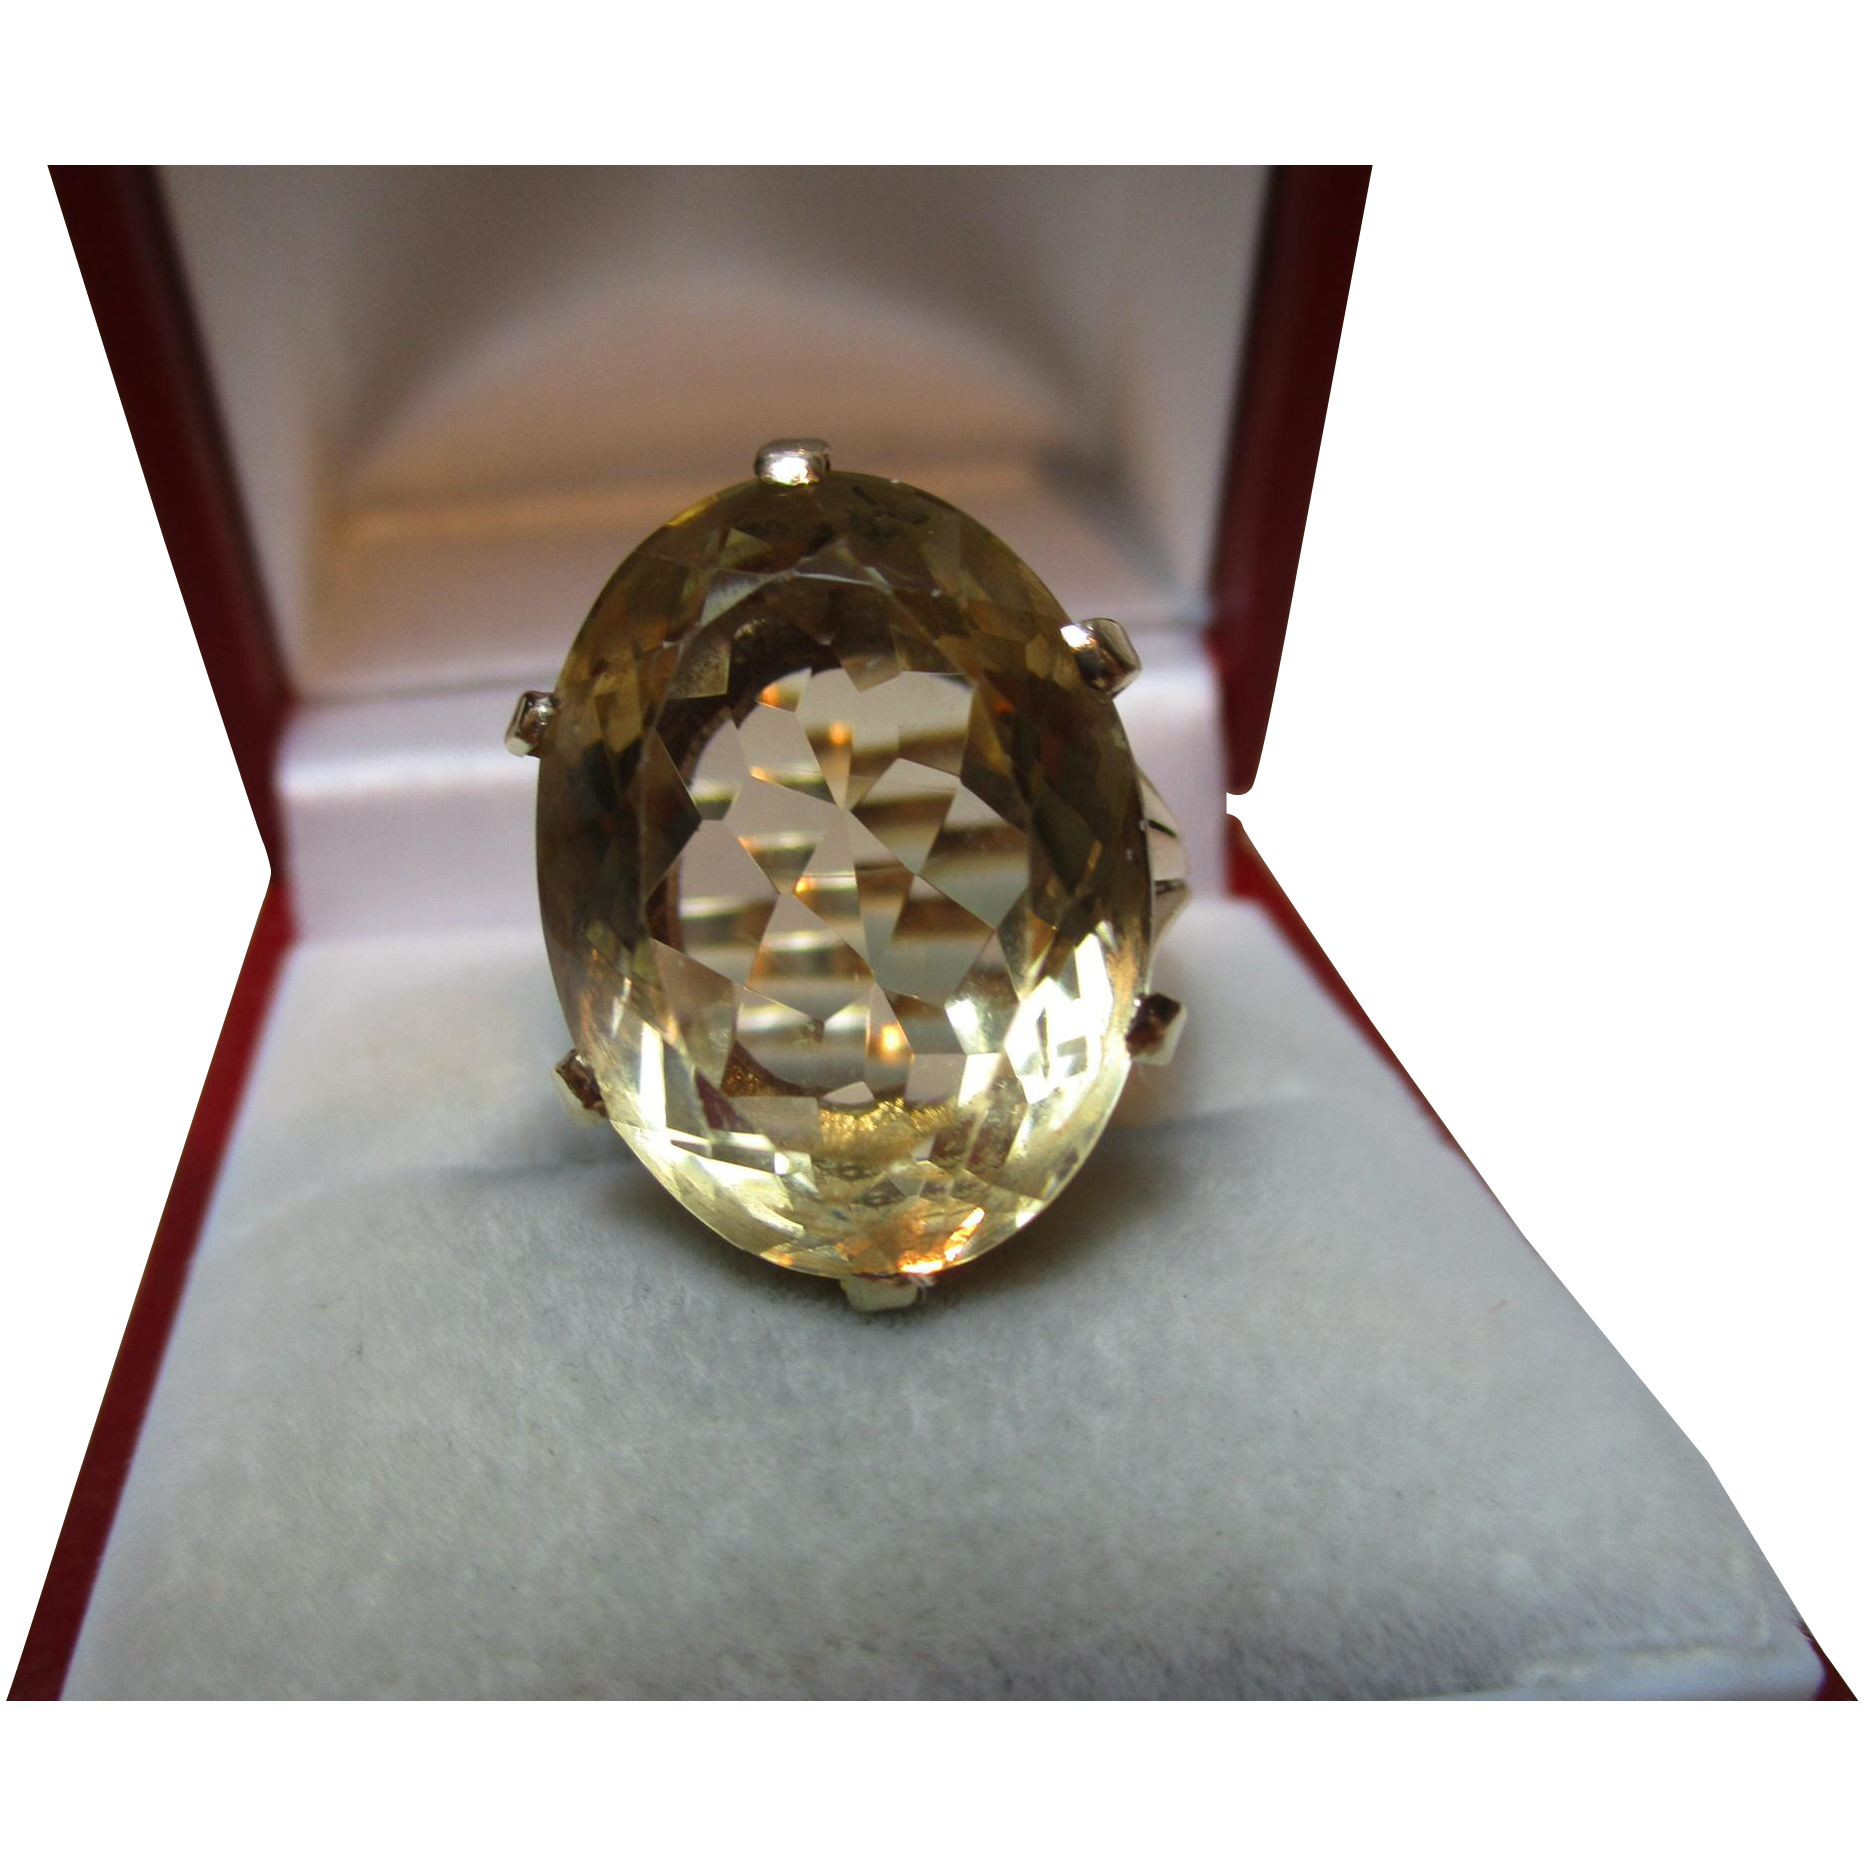 Decorative Vintage{Birmingham 1963} 9ct Solid Gold 'Cushion Shaped' Citrine Gemstone Ring{7.5 Grams}